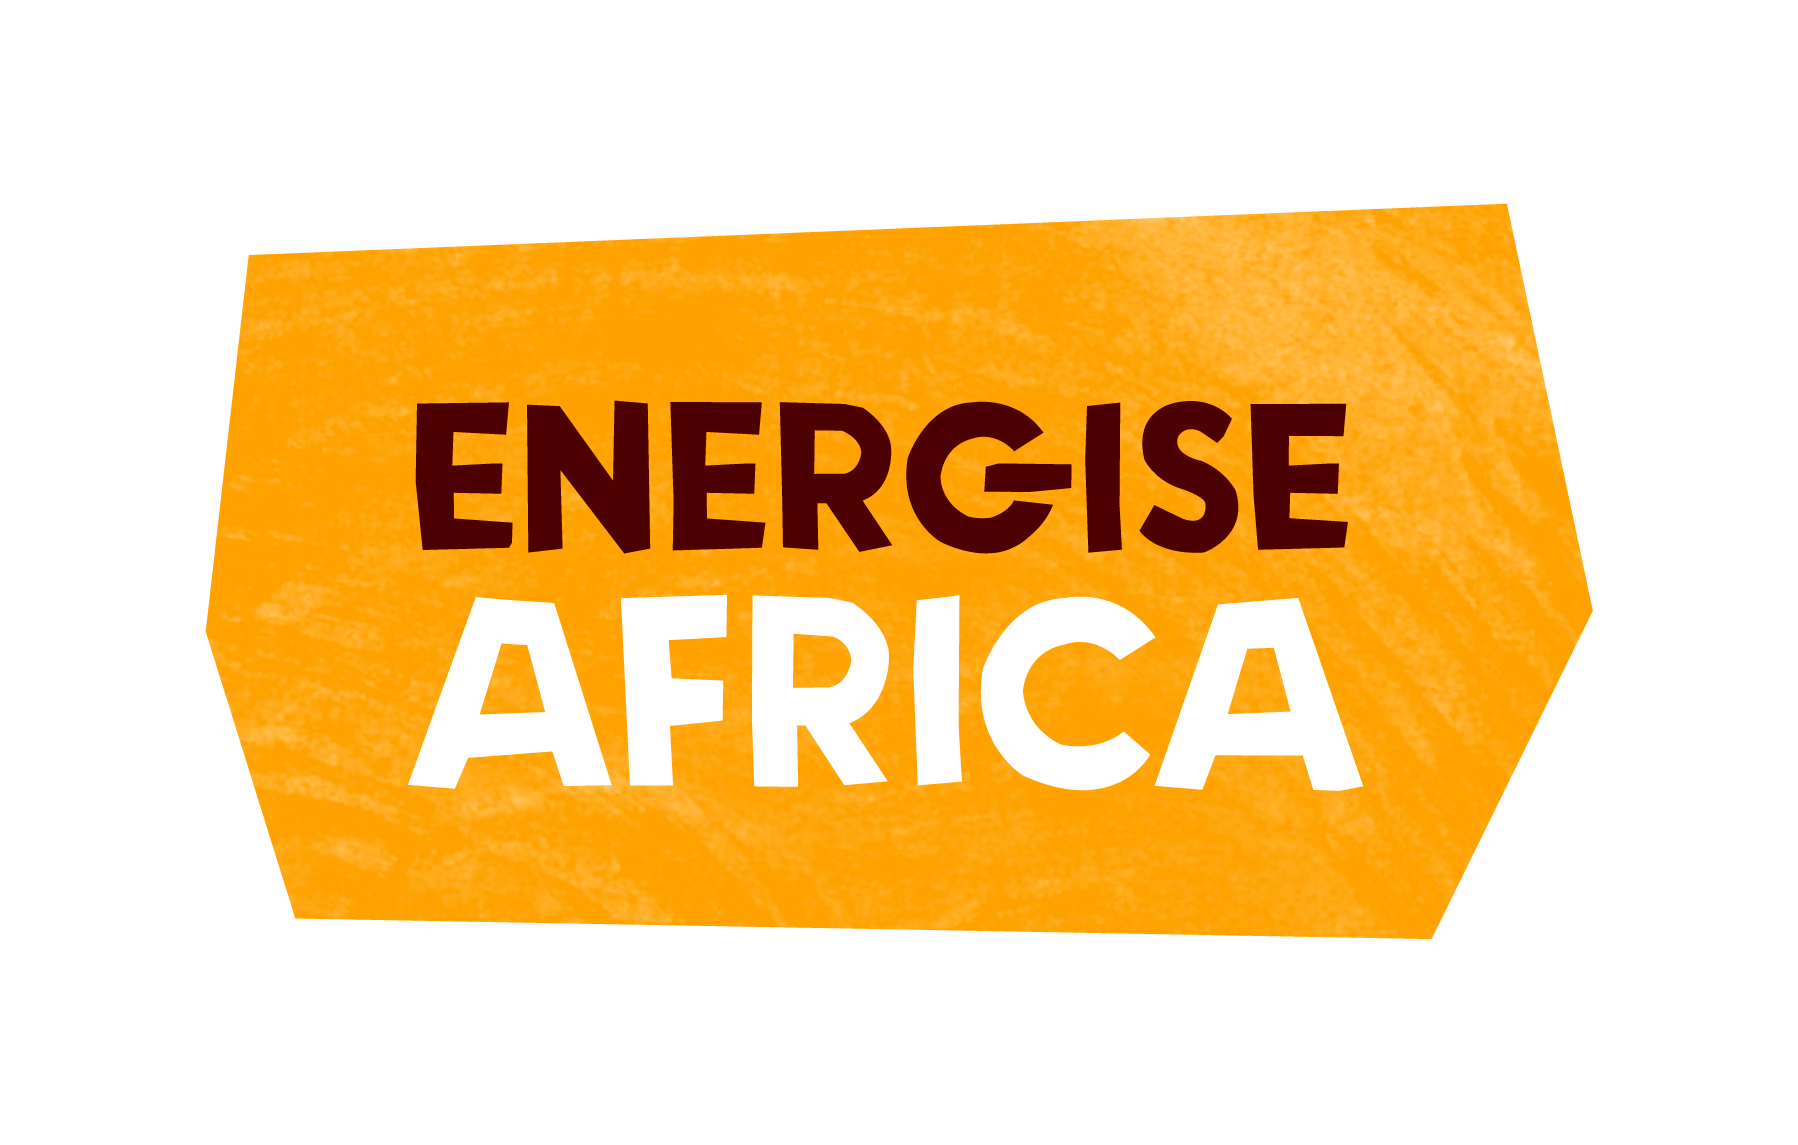 Energise Africa